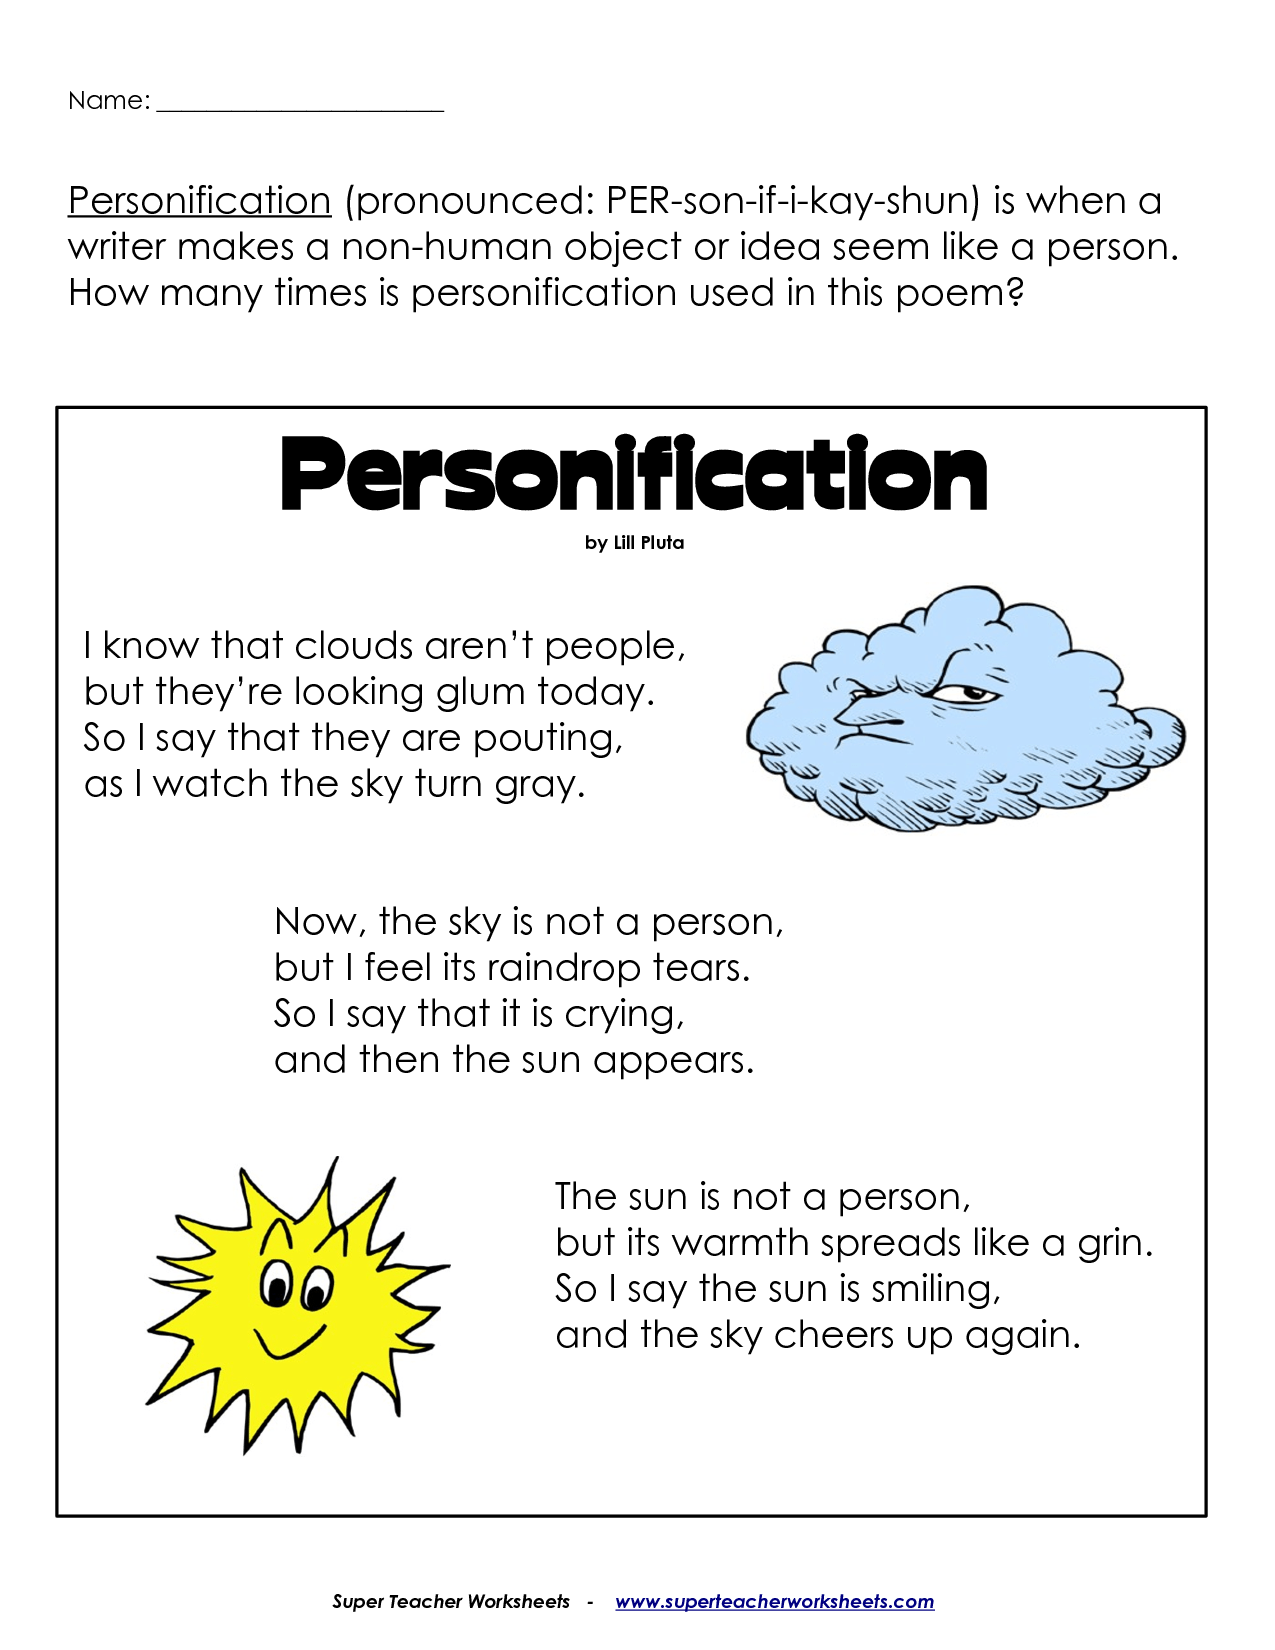 Worksheet On Personification